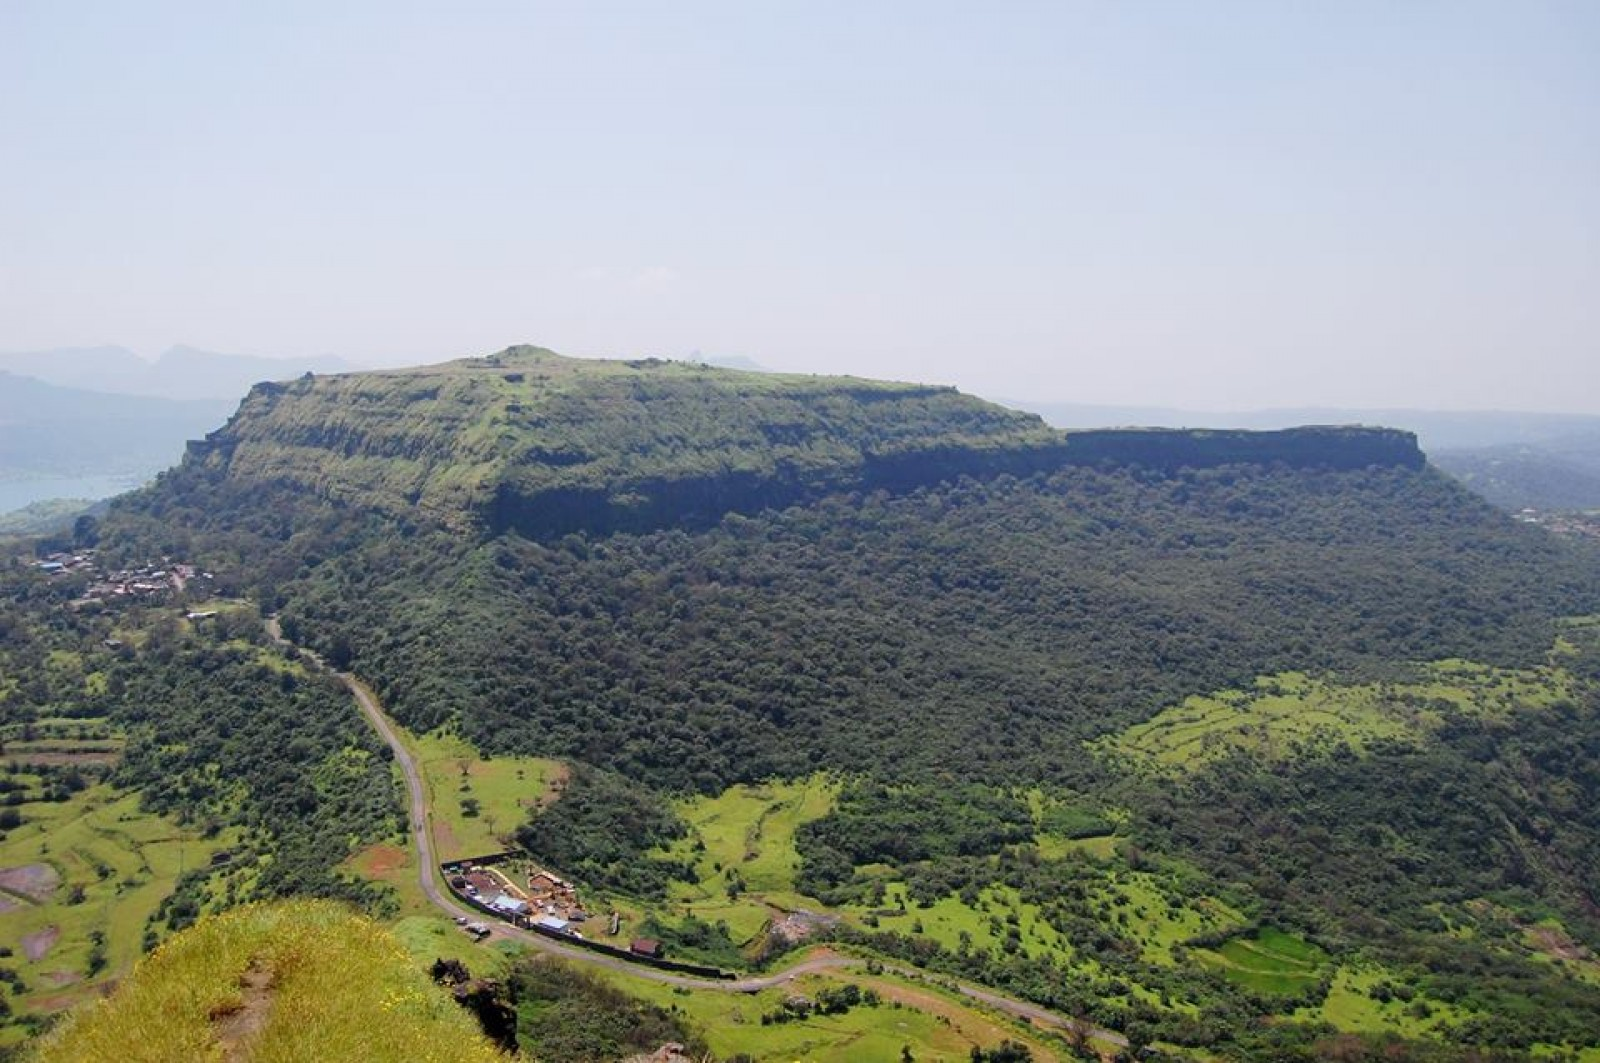 Day Trek to Visapur Fort